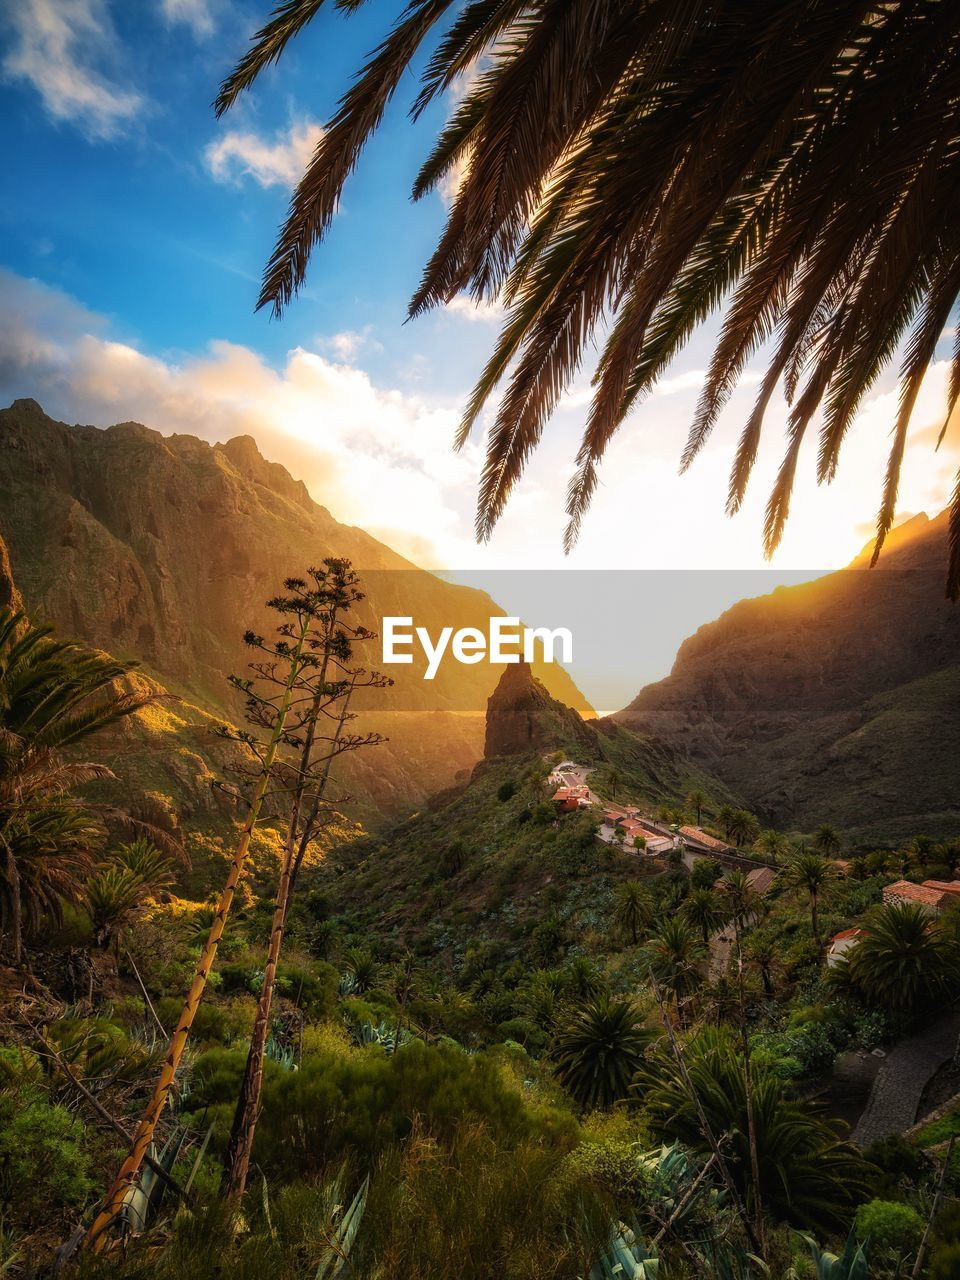 sky, mountain, plant, scenics - nature, beauty in nature, tranquility, tranquil scene, tree, nature, cloud - sky, palm tree, growth, sunset, no people, tropical climate, non-urban scene, environment, mountain range, idyllic, landscape, outdoors, palm leaf, coconut palm tree, mountain peak